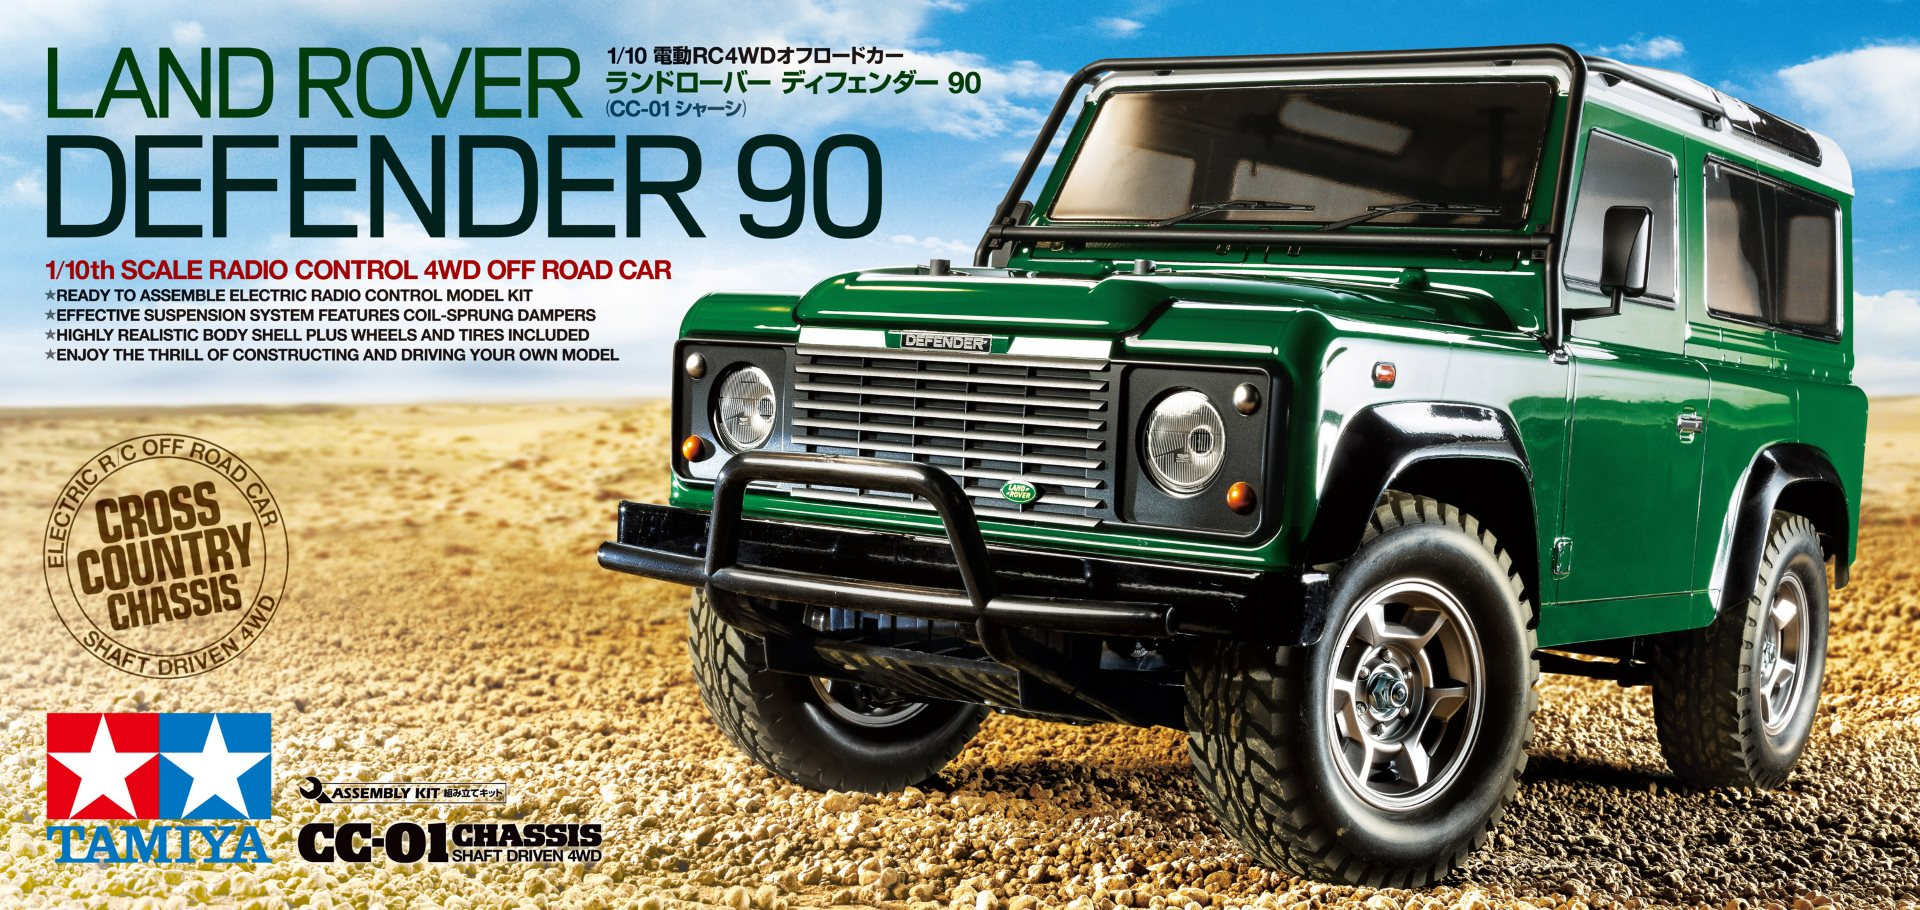 Tamiya 58657 Land Rover Defender 90 Cc 01 1 10 Toyland Hobby 1975 Another Big Name Joins The World Of R C Is An Enduring Vehicle That Traces Its Lineage Back To Original Cars